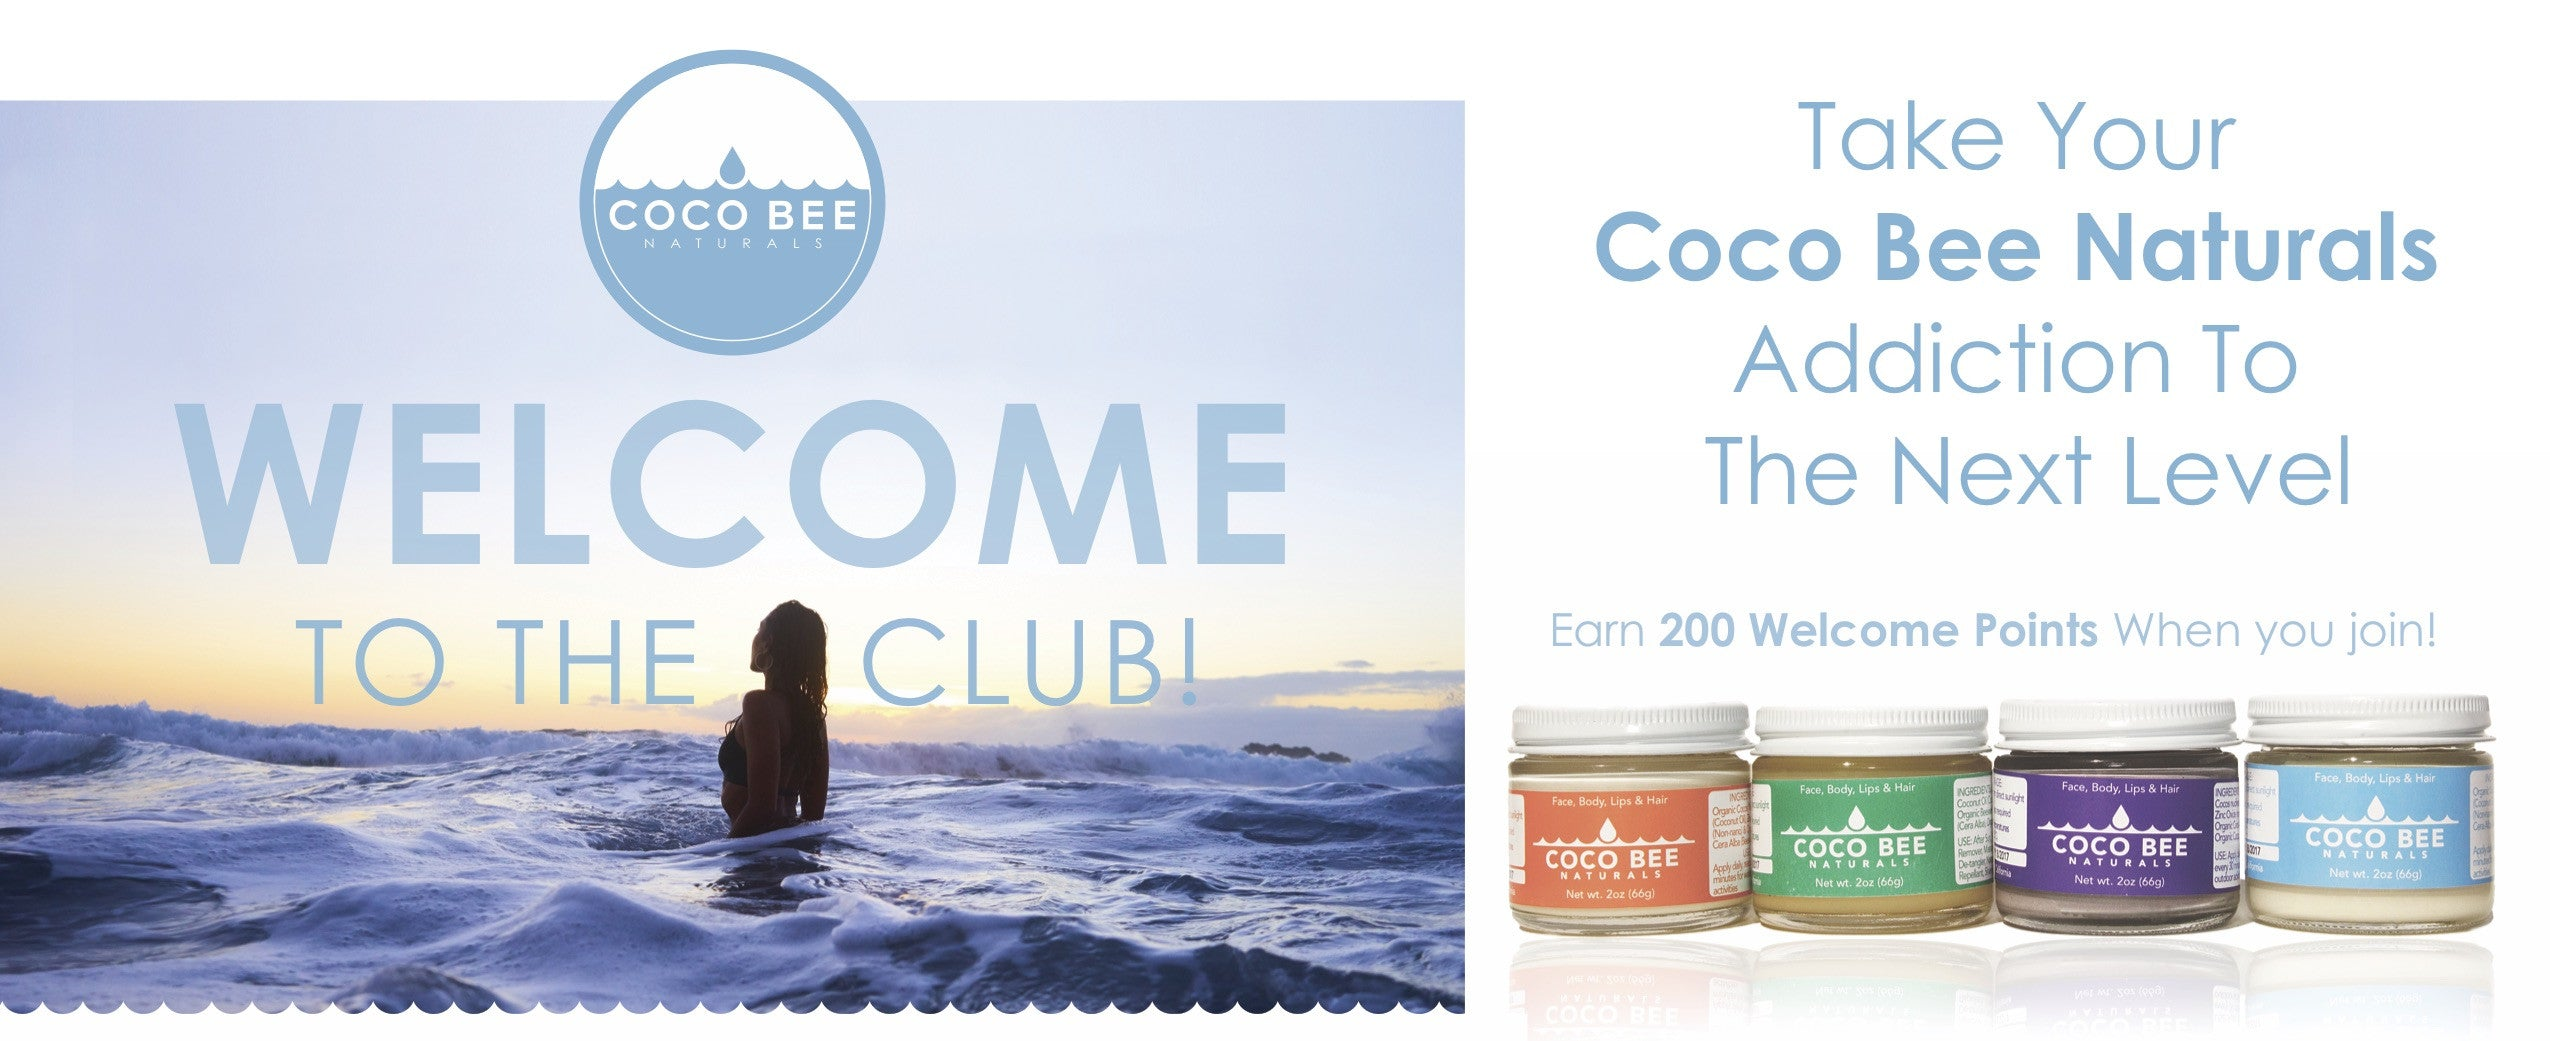 Coco Bee Reward Program